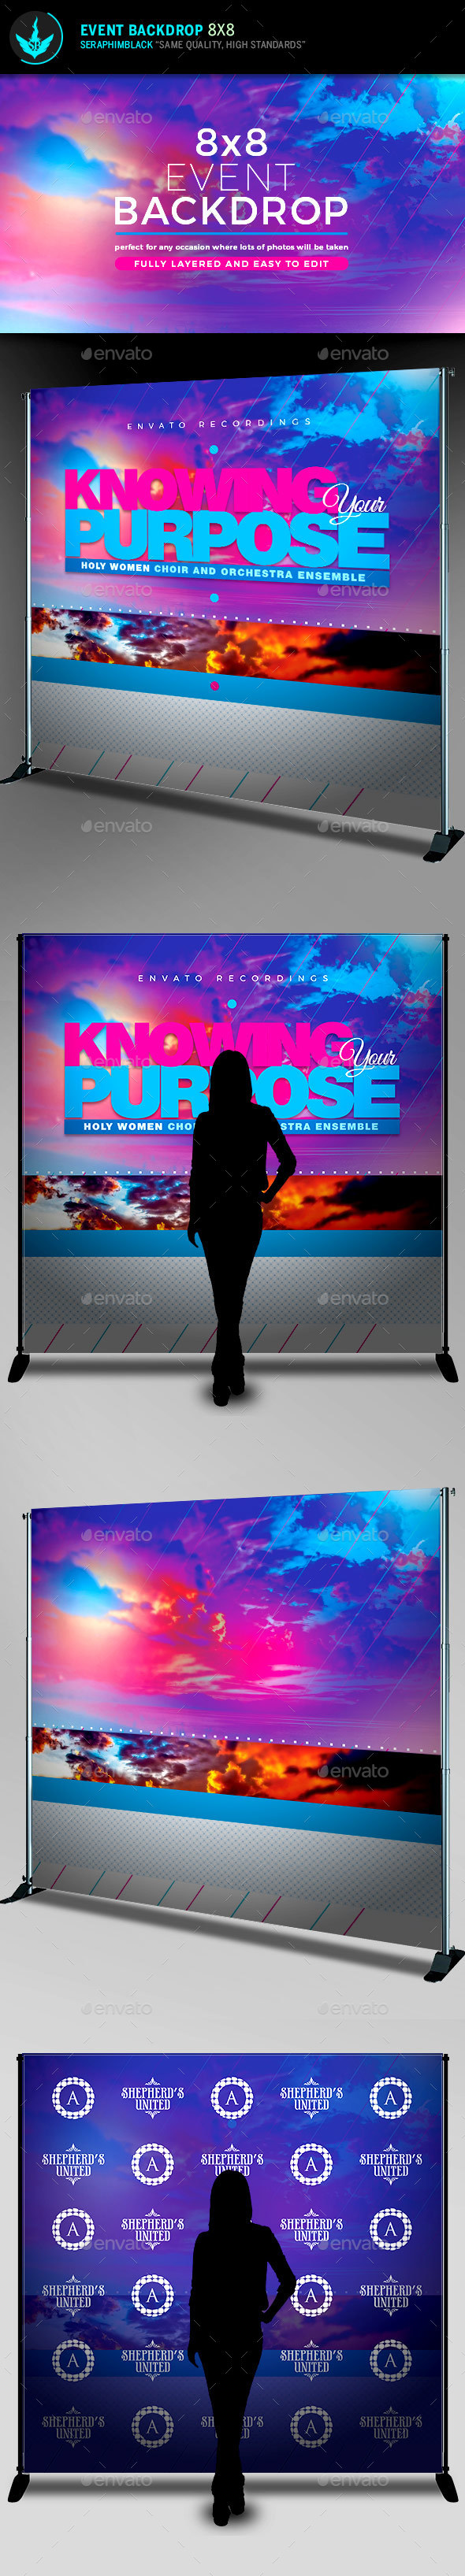 Knowing Your Purpose Event Backdrop Template - Signage Print Templates